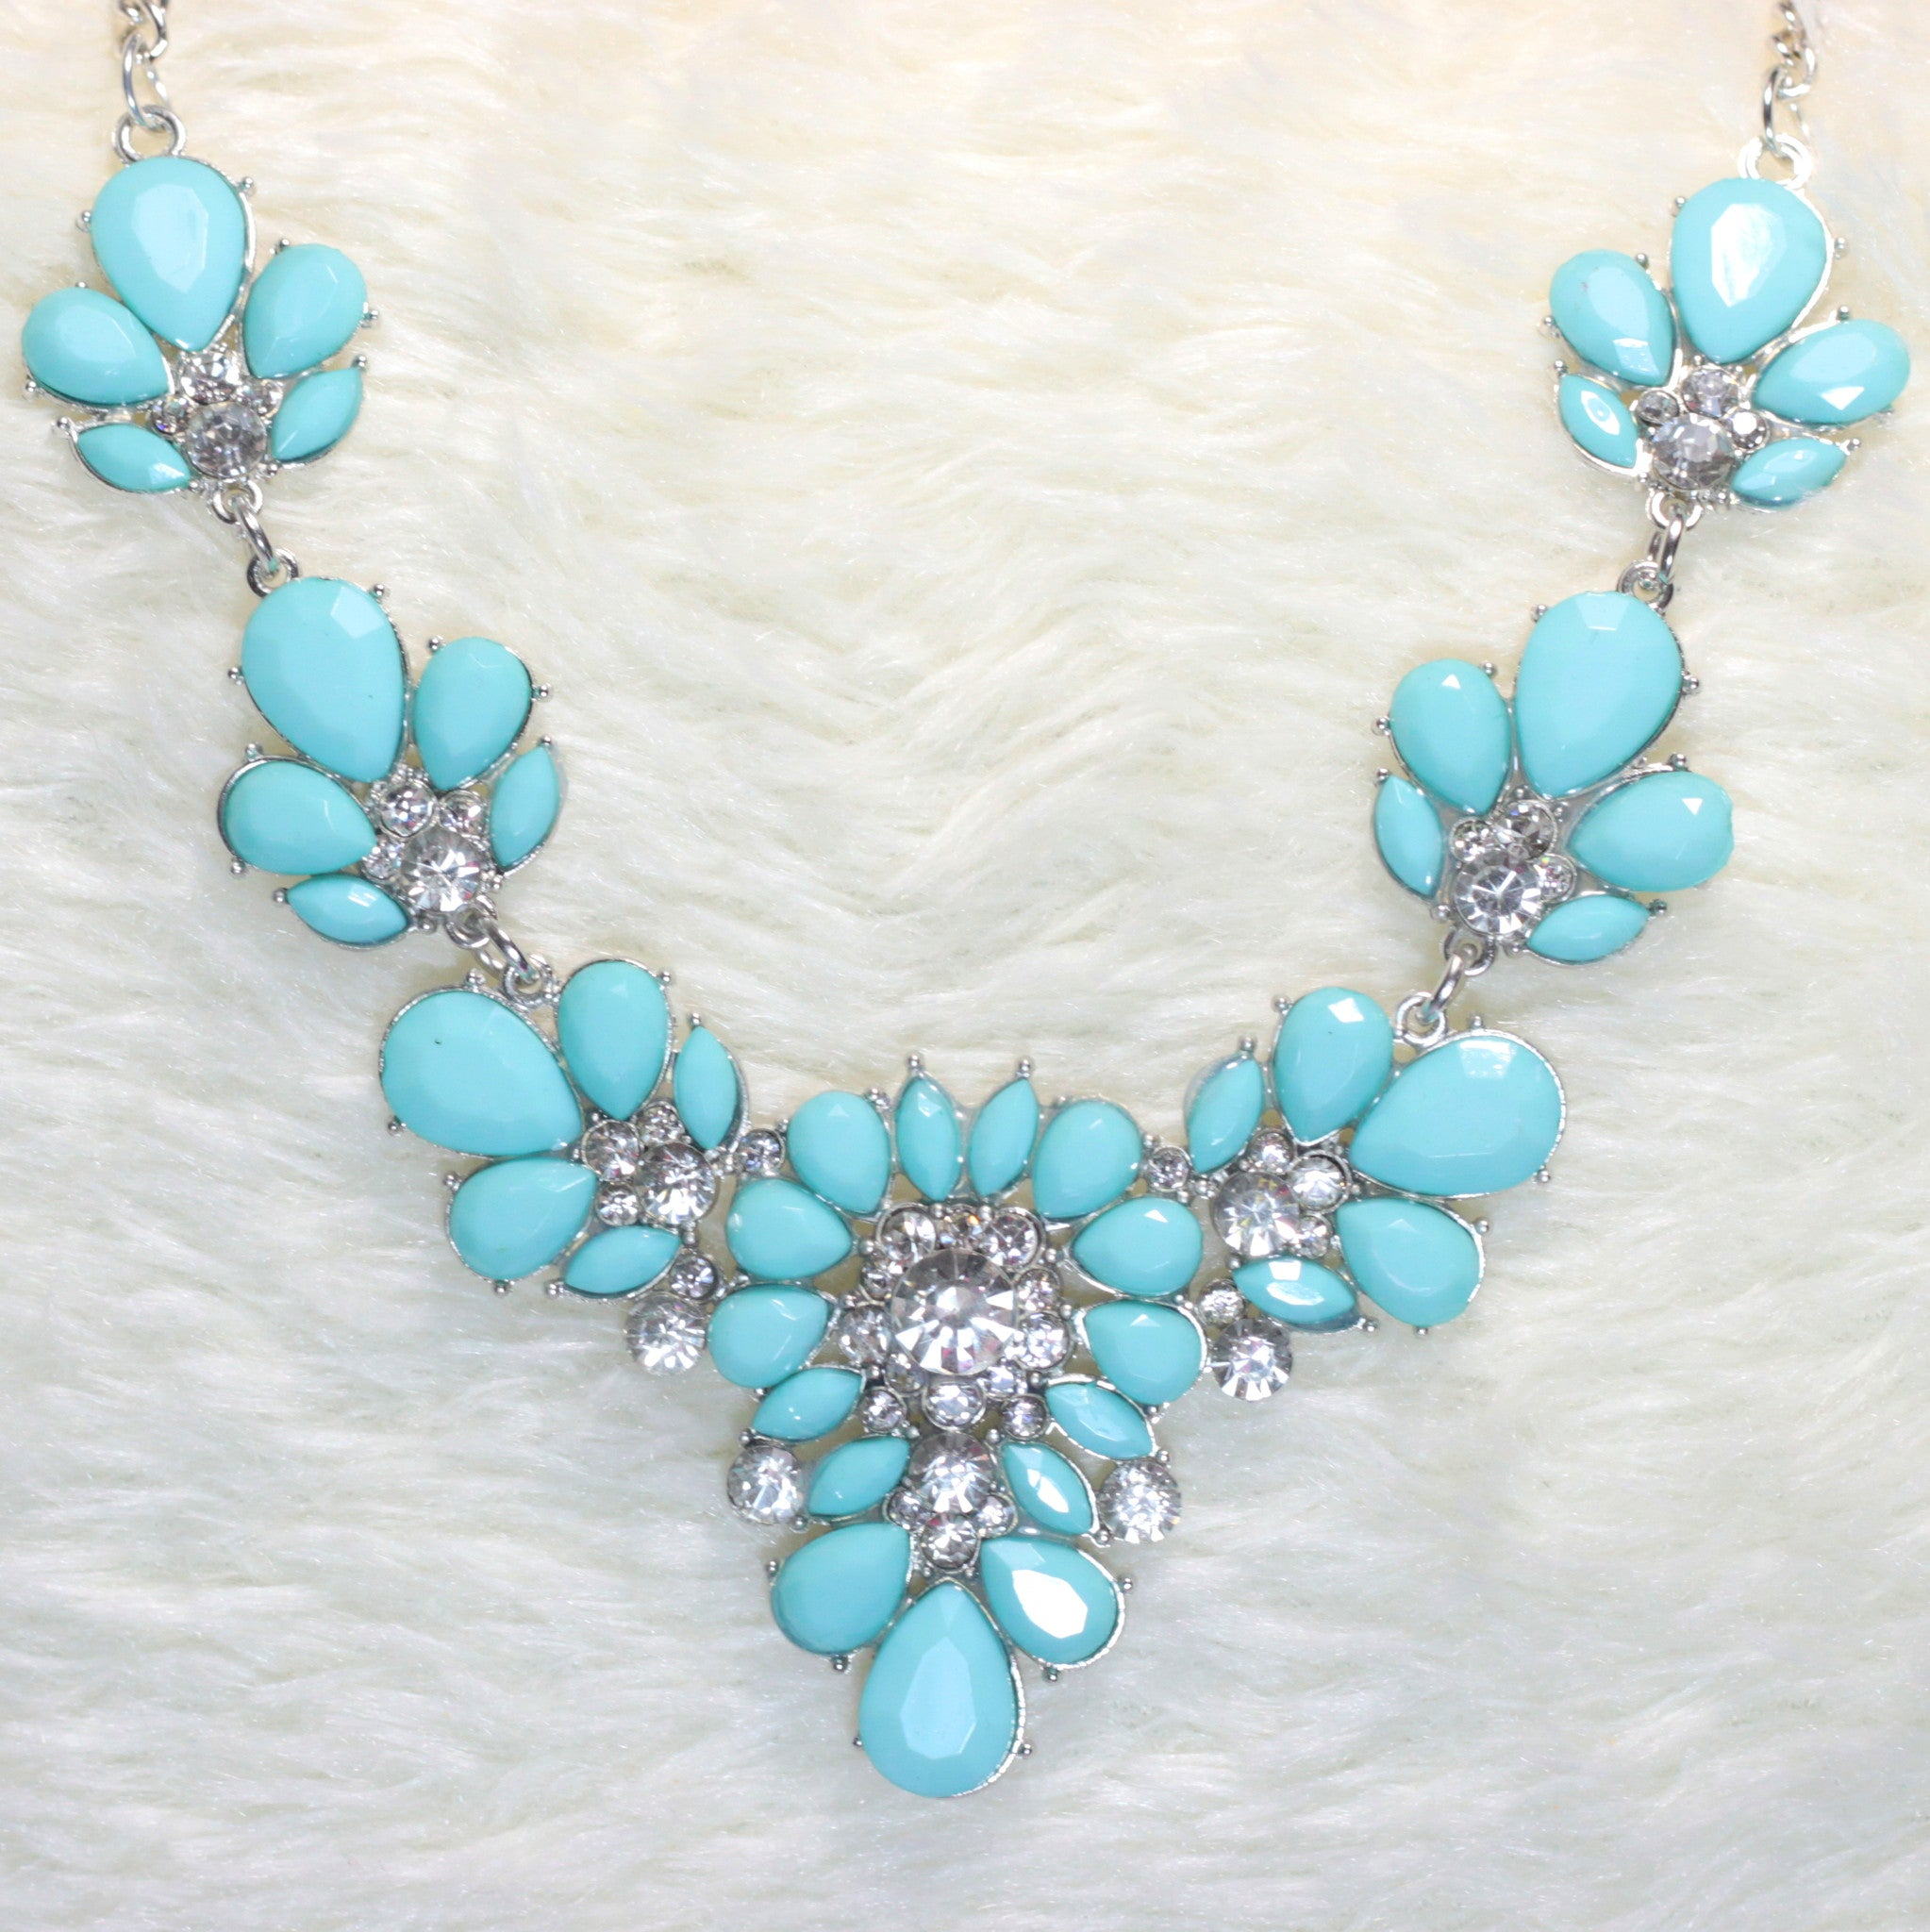 Ivy Blue Flower Fashion Necklace - Micha Store  - 1